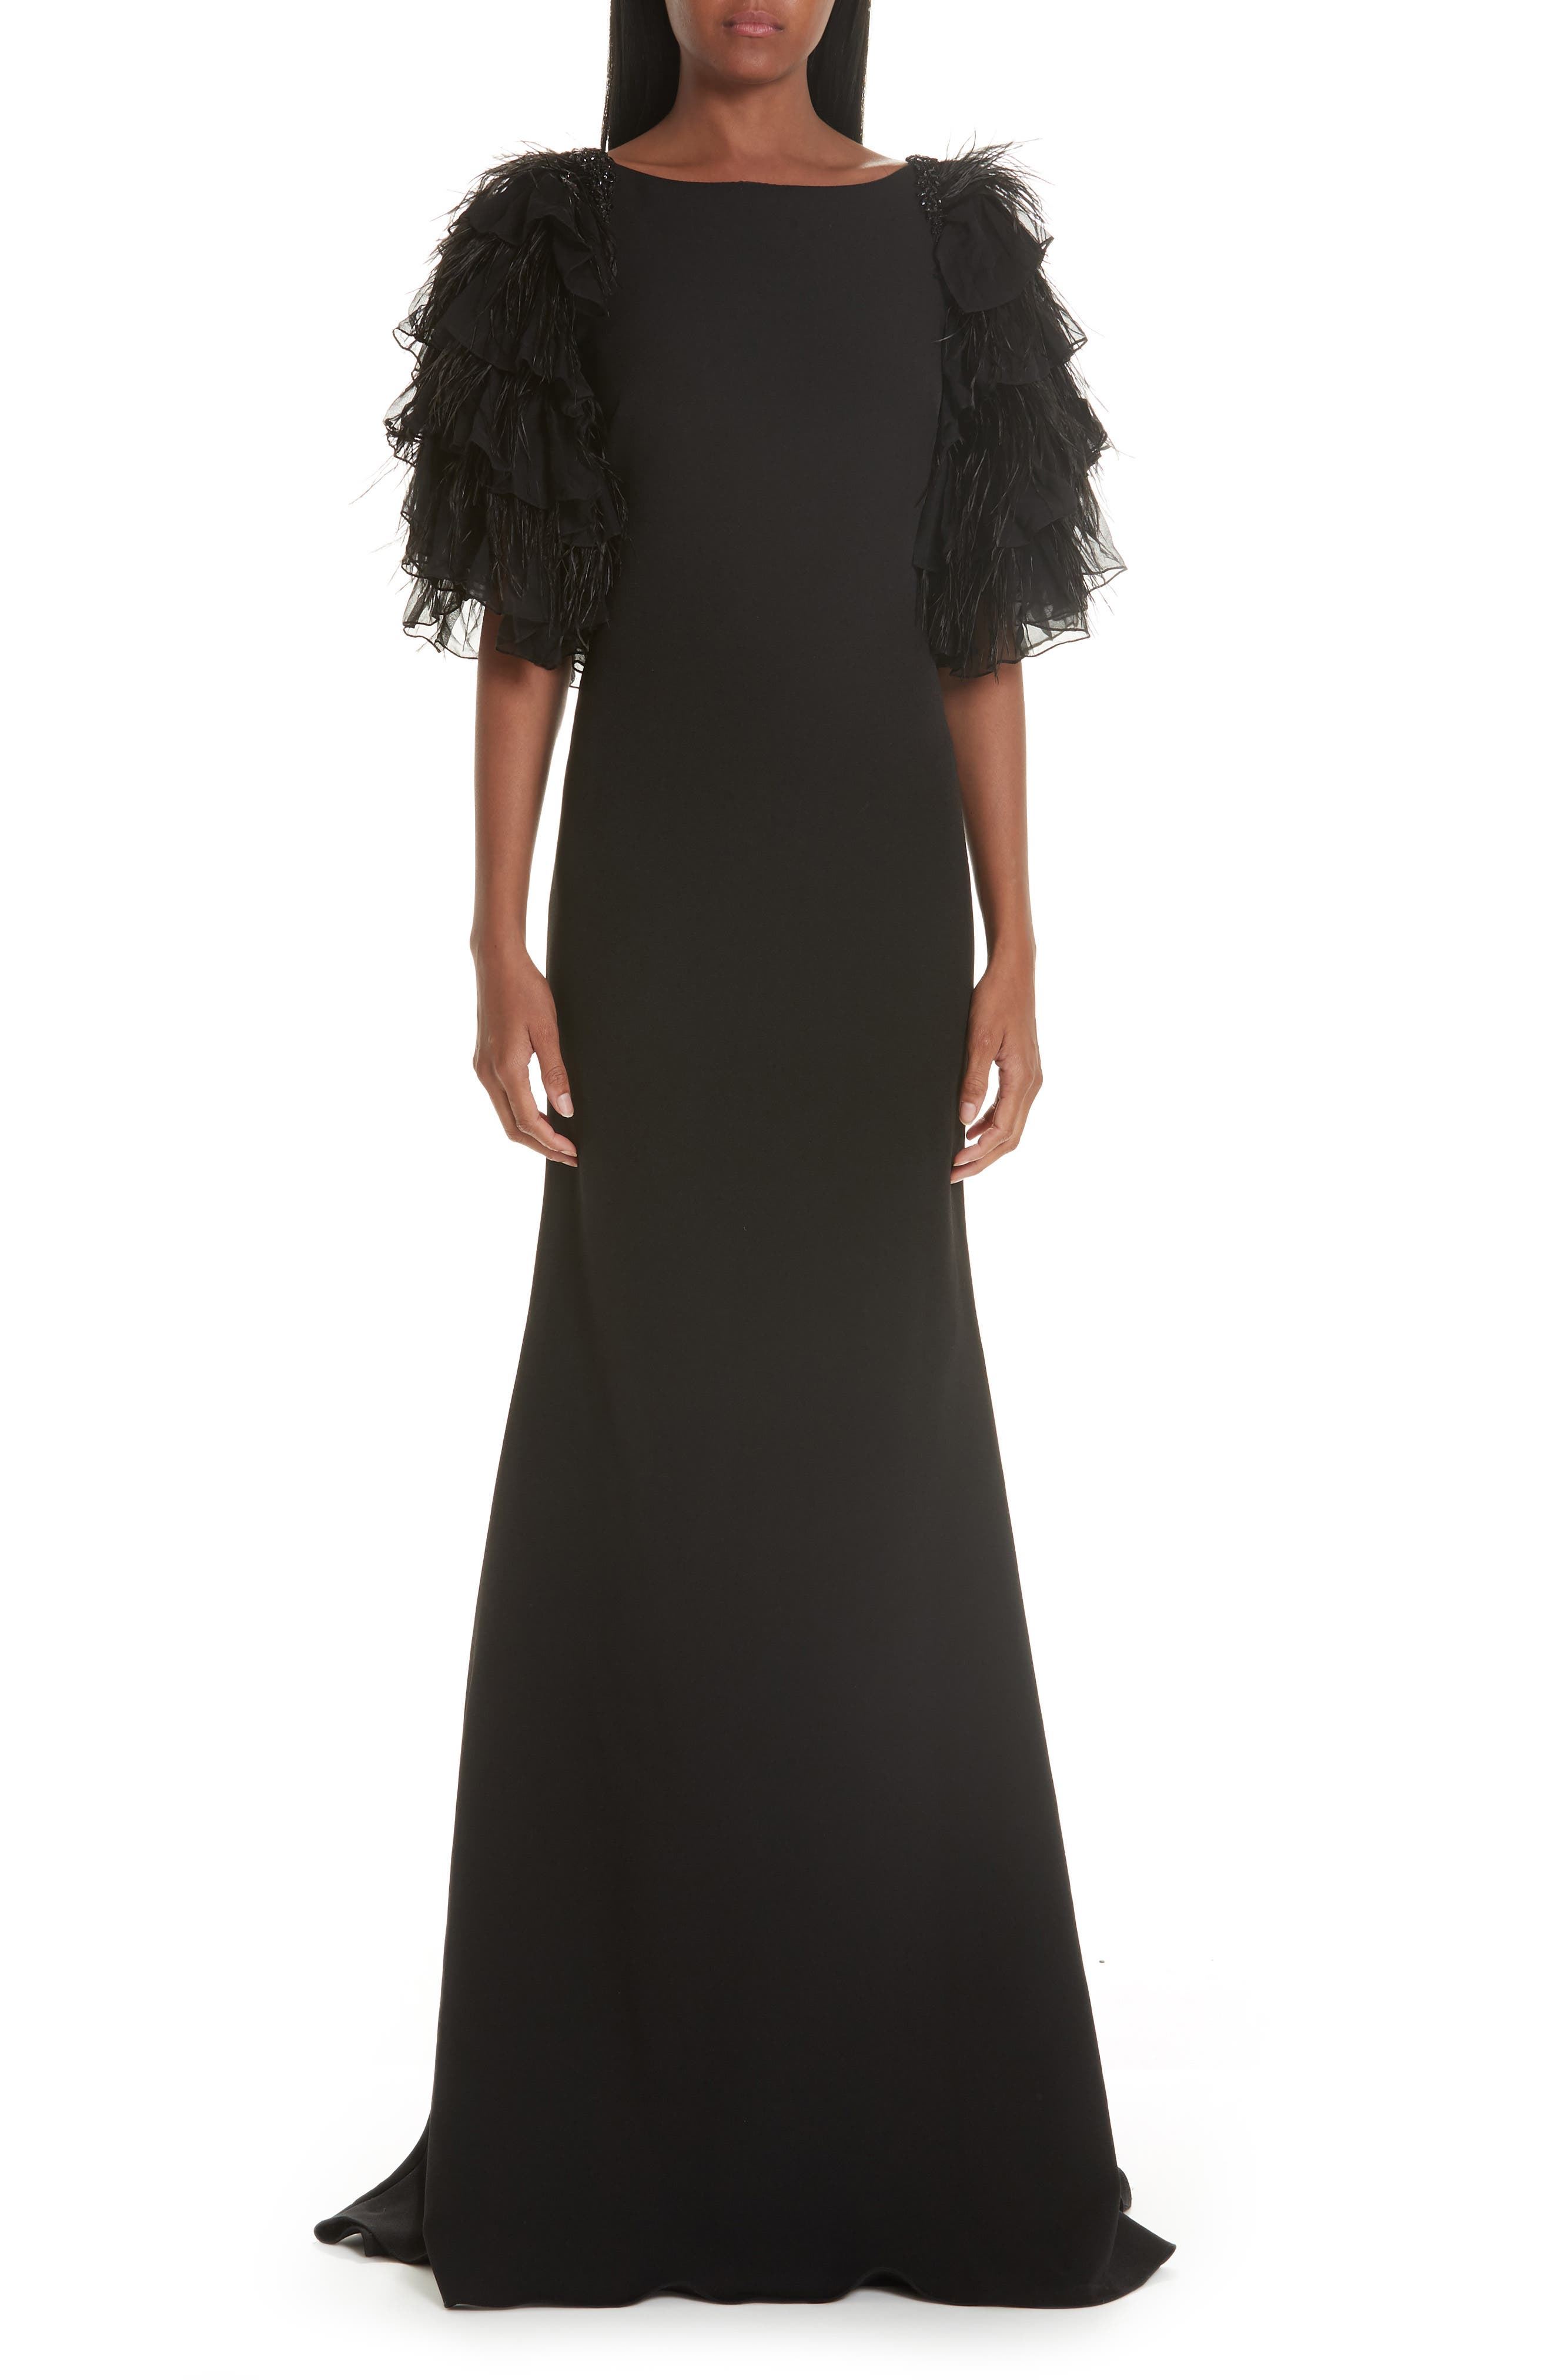 BADGLEY & MISCHKA High-Neck Feather Tiered Ruffle-Sleeve Gown in Black